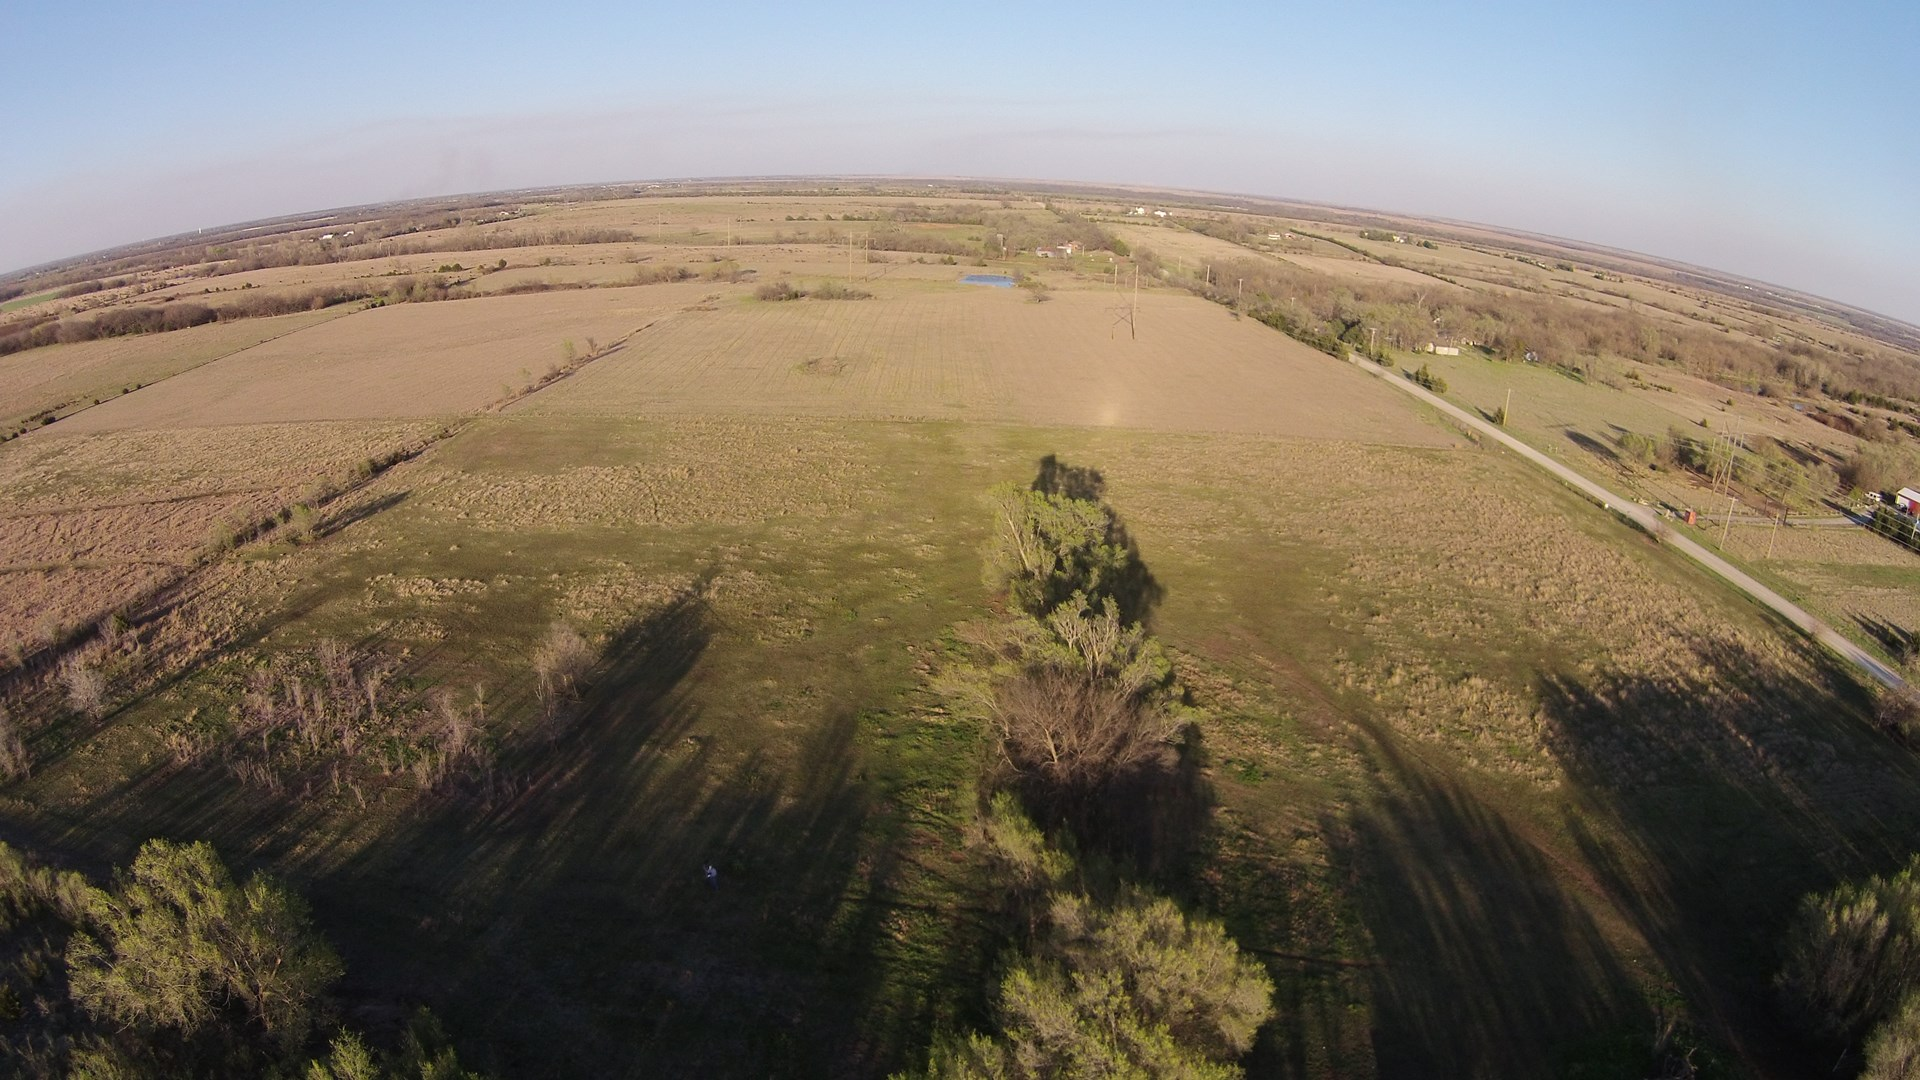 Land For Sale in Coffey County Kansas